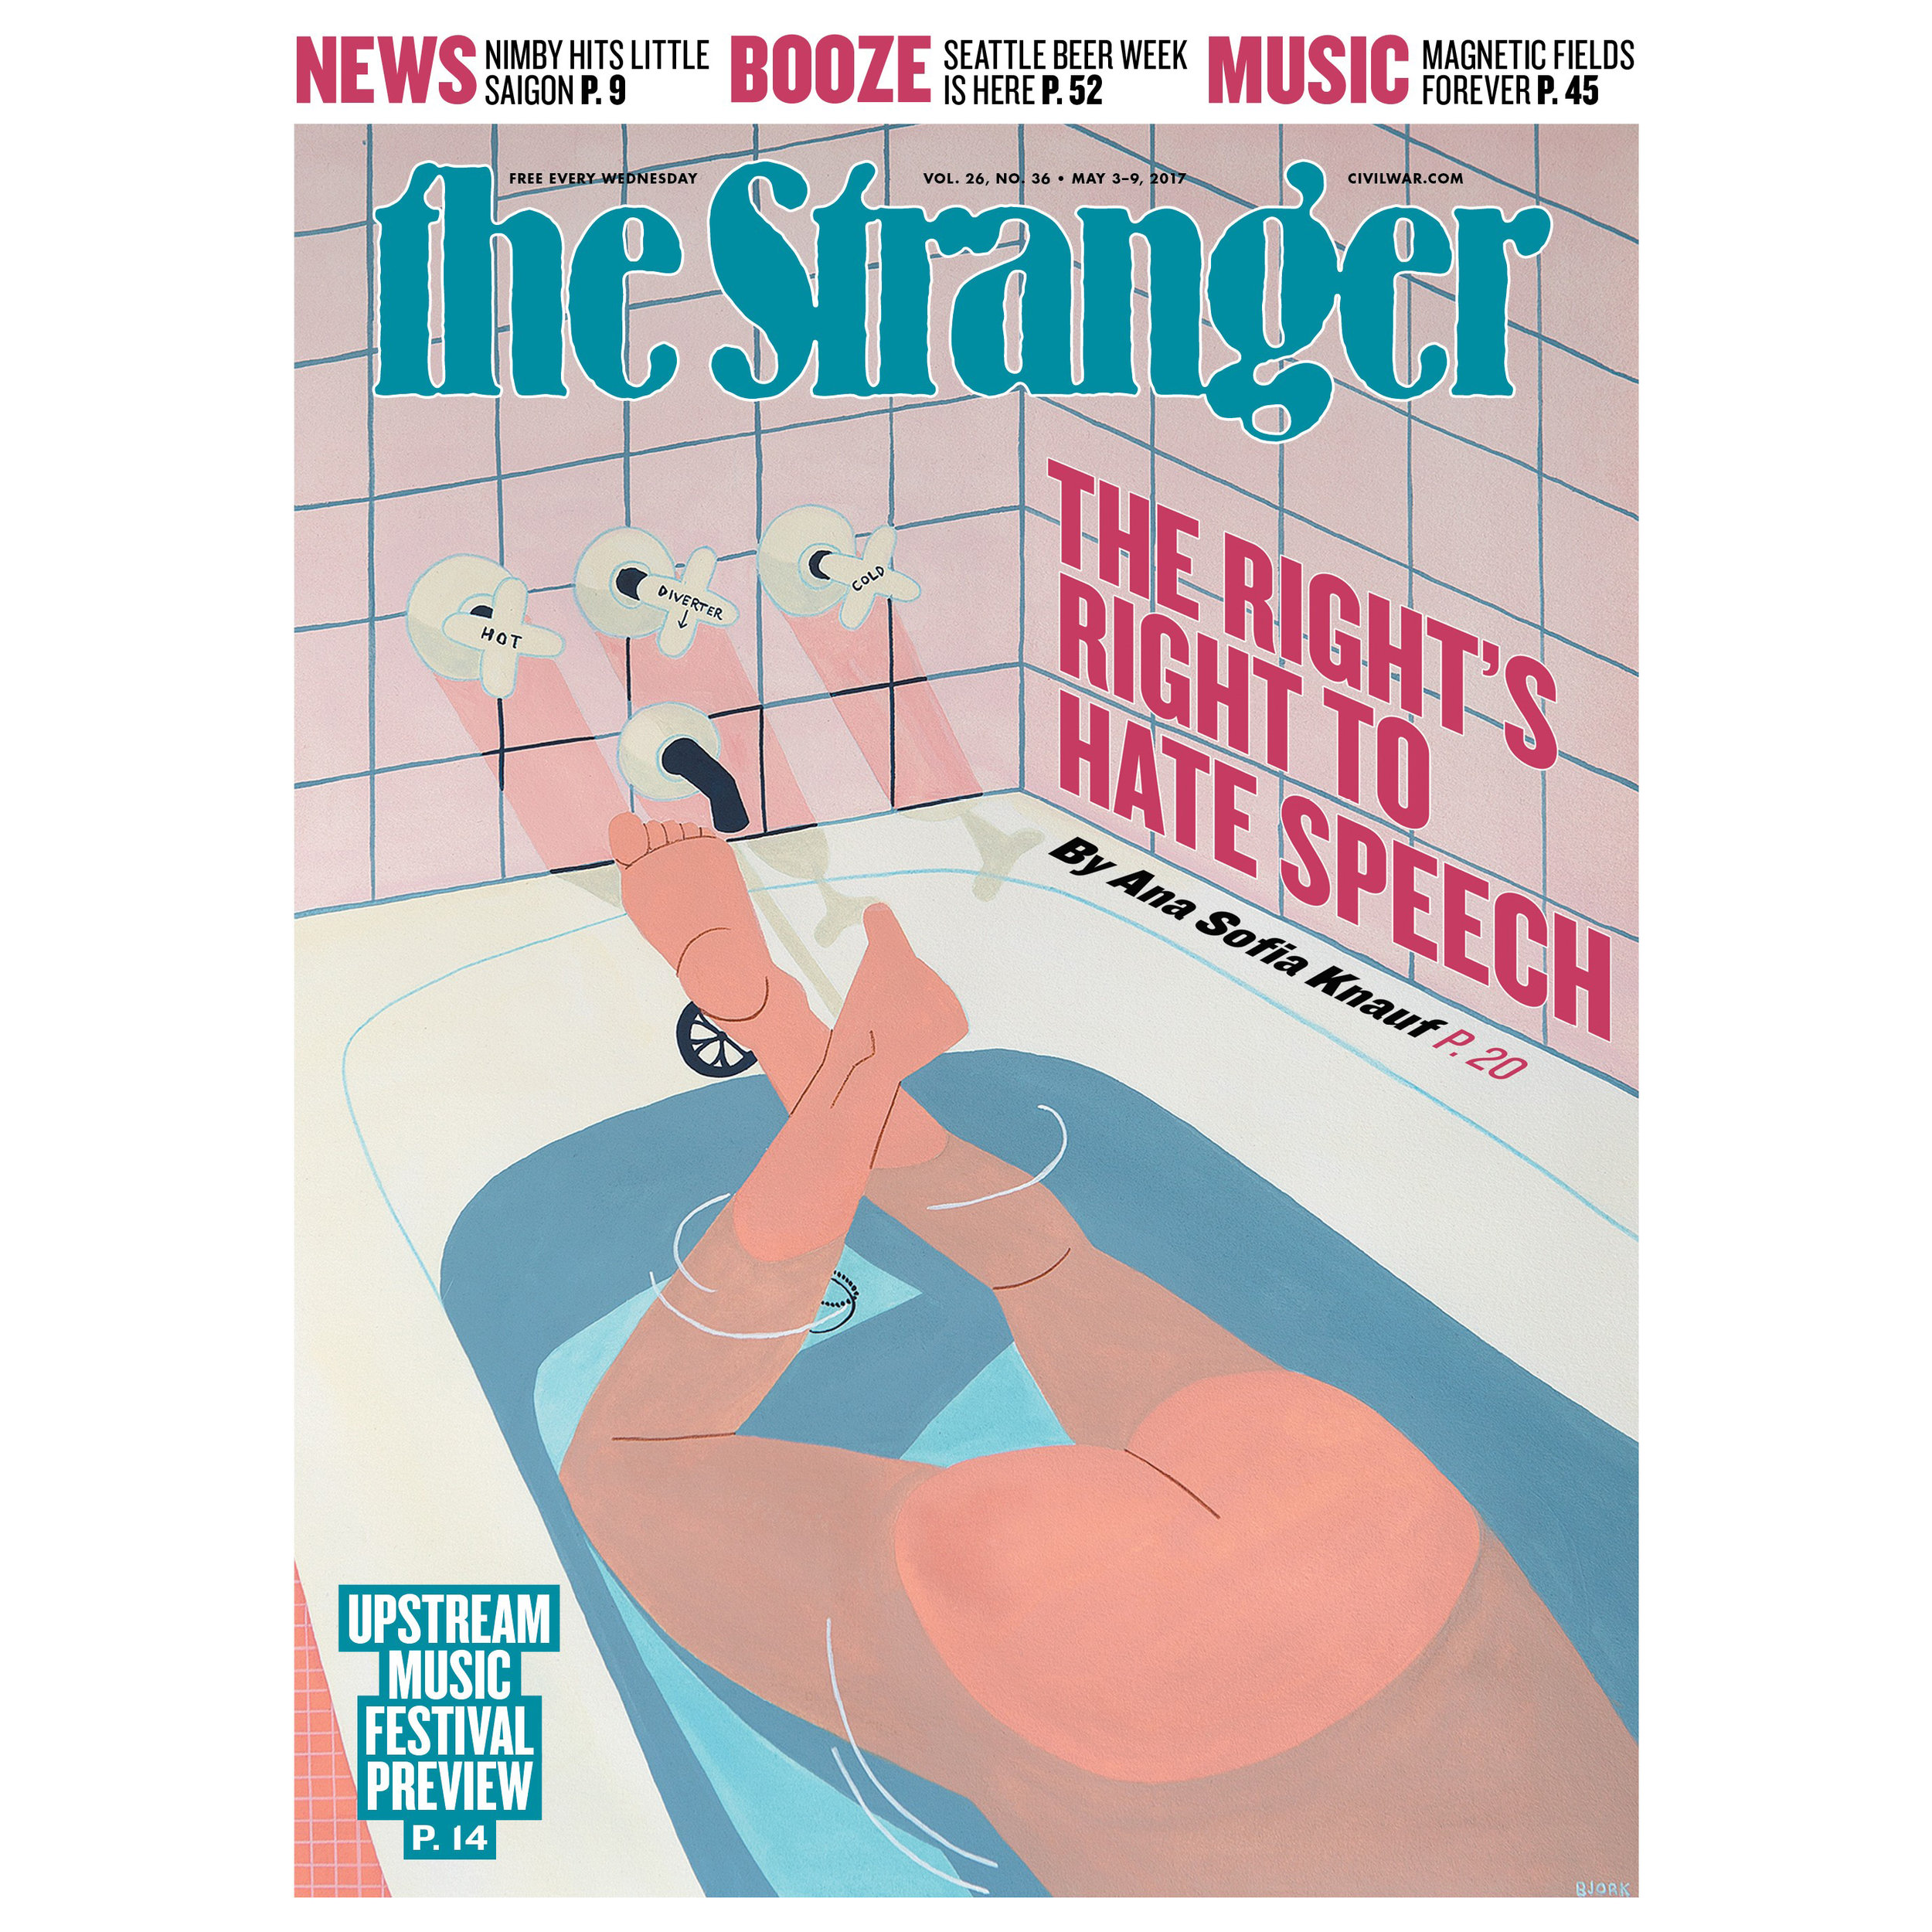 The Stranger Volume 26, Issue 36 May 201  7